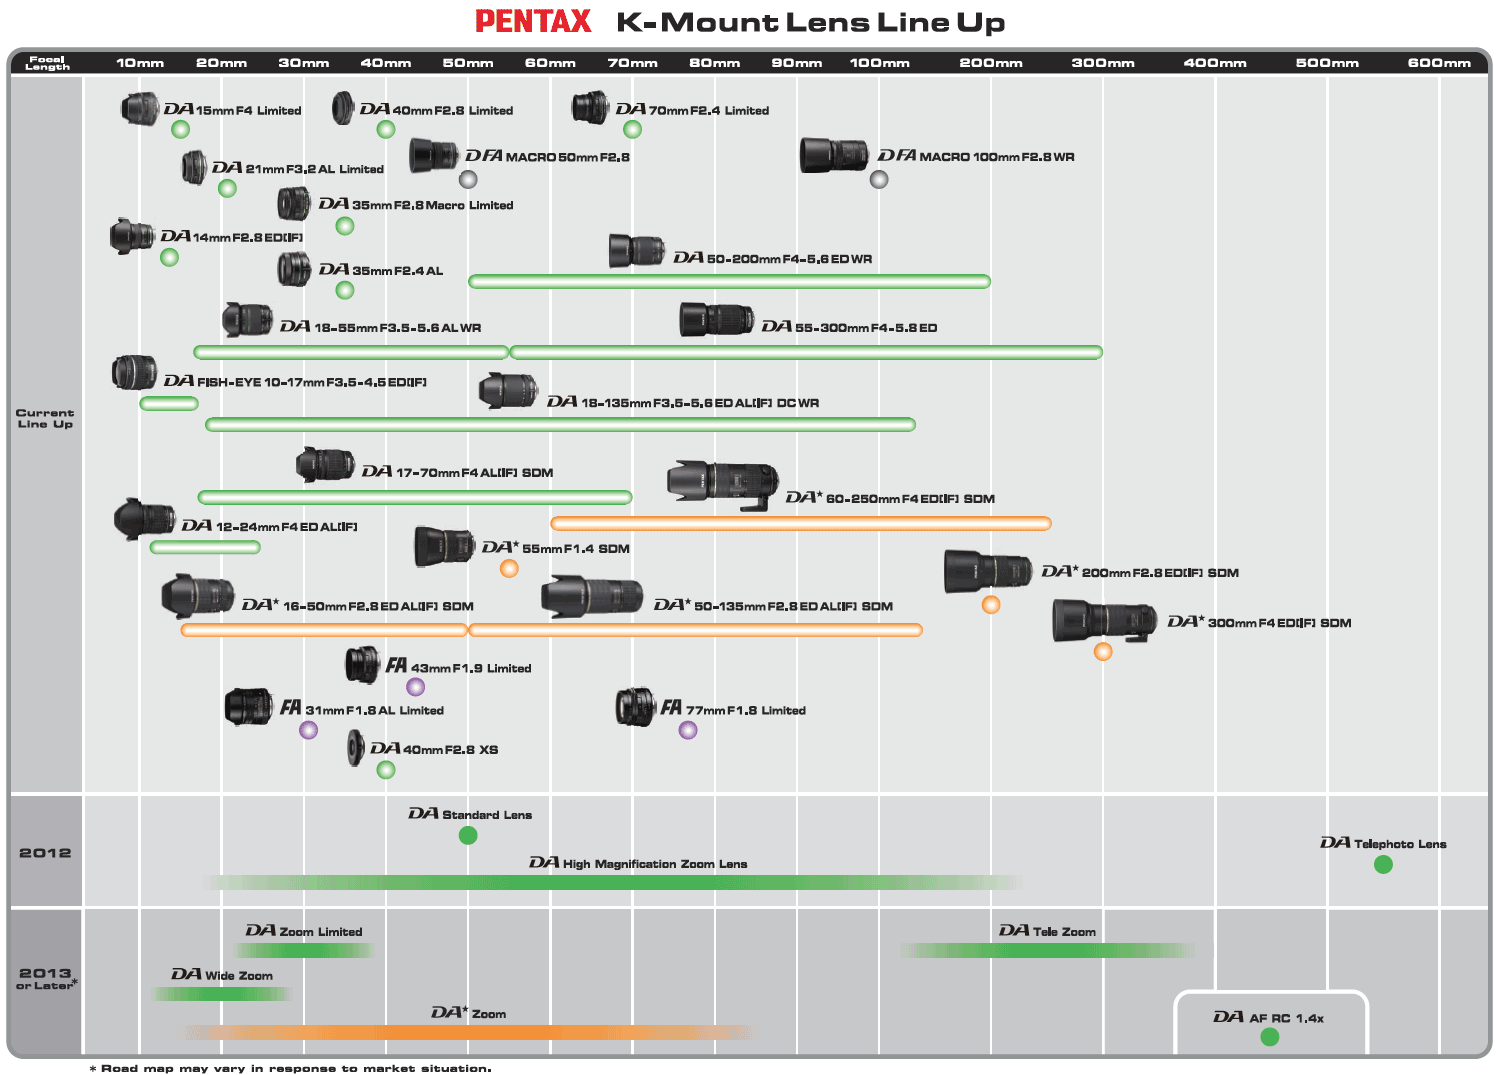 Pentax k-mount lens roadmap